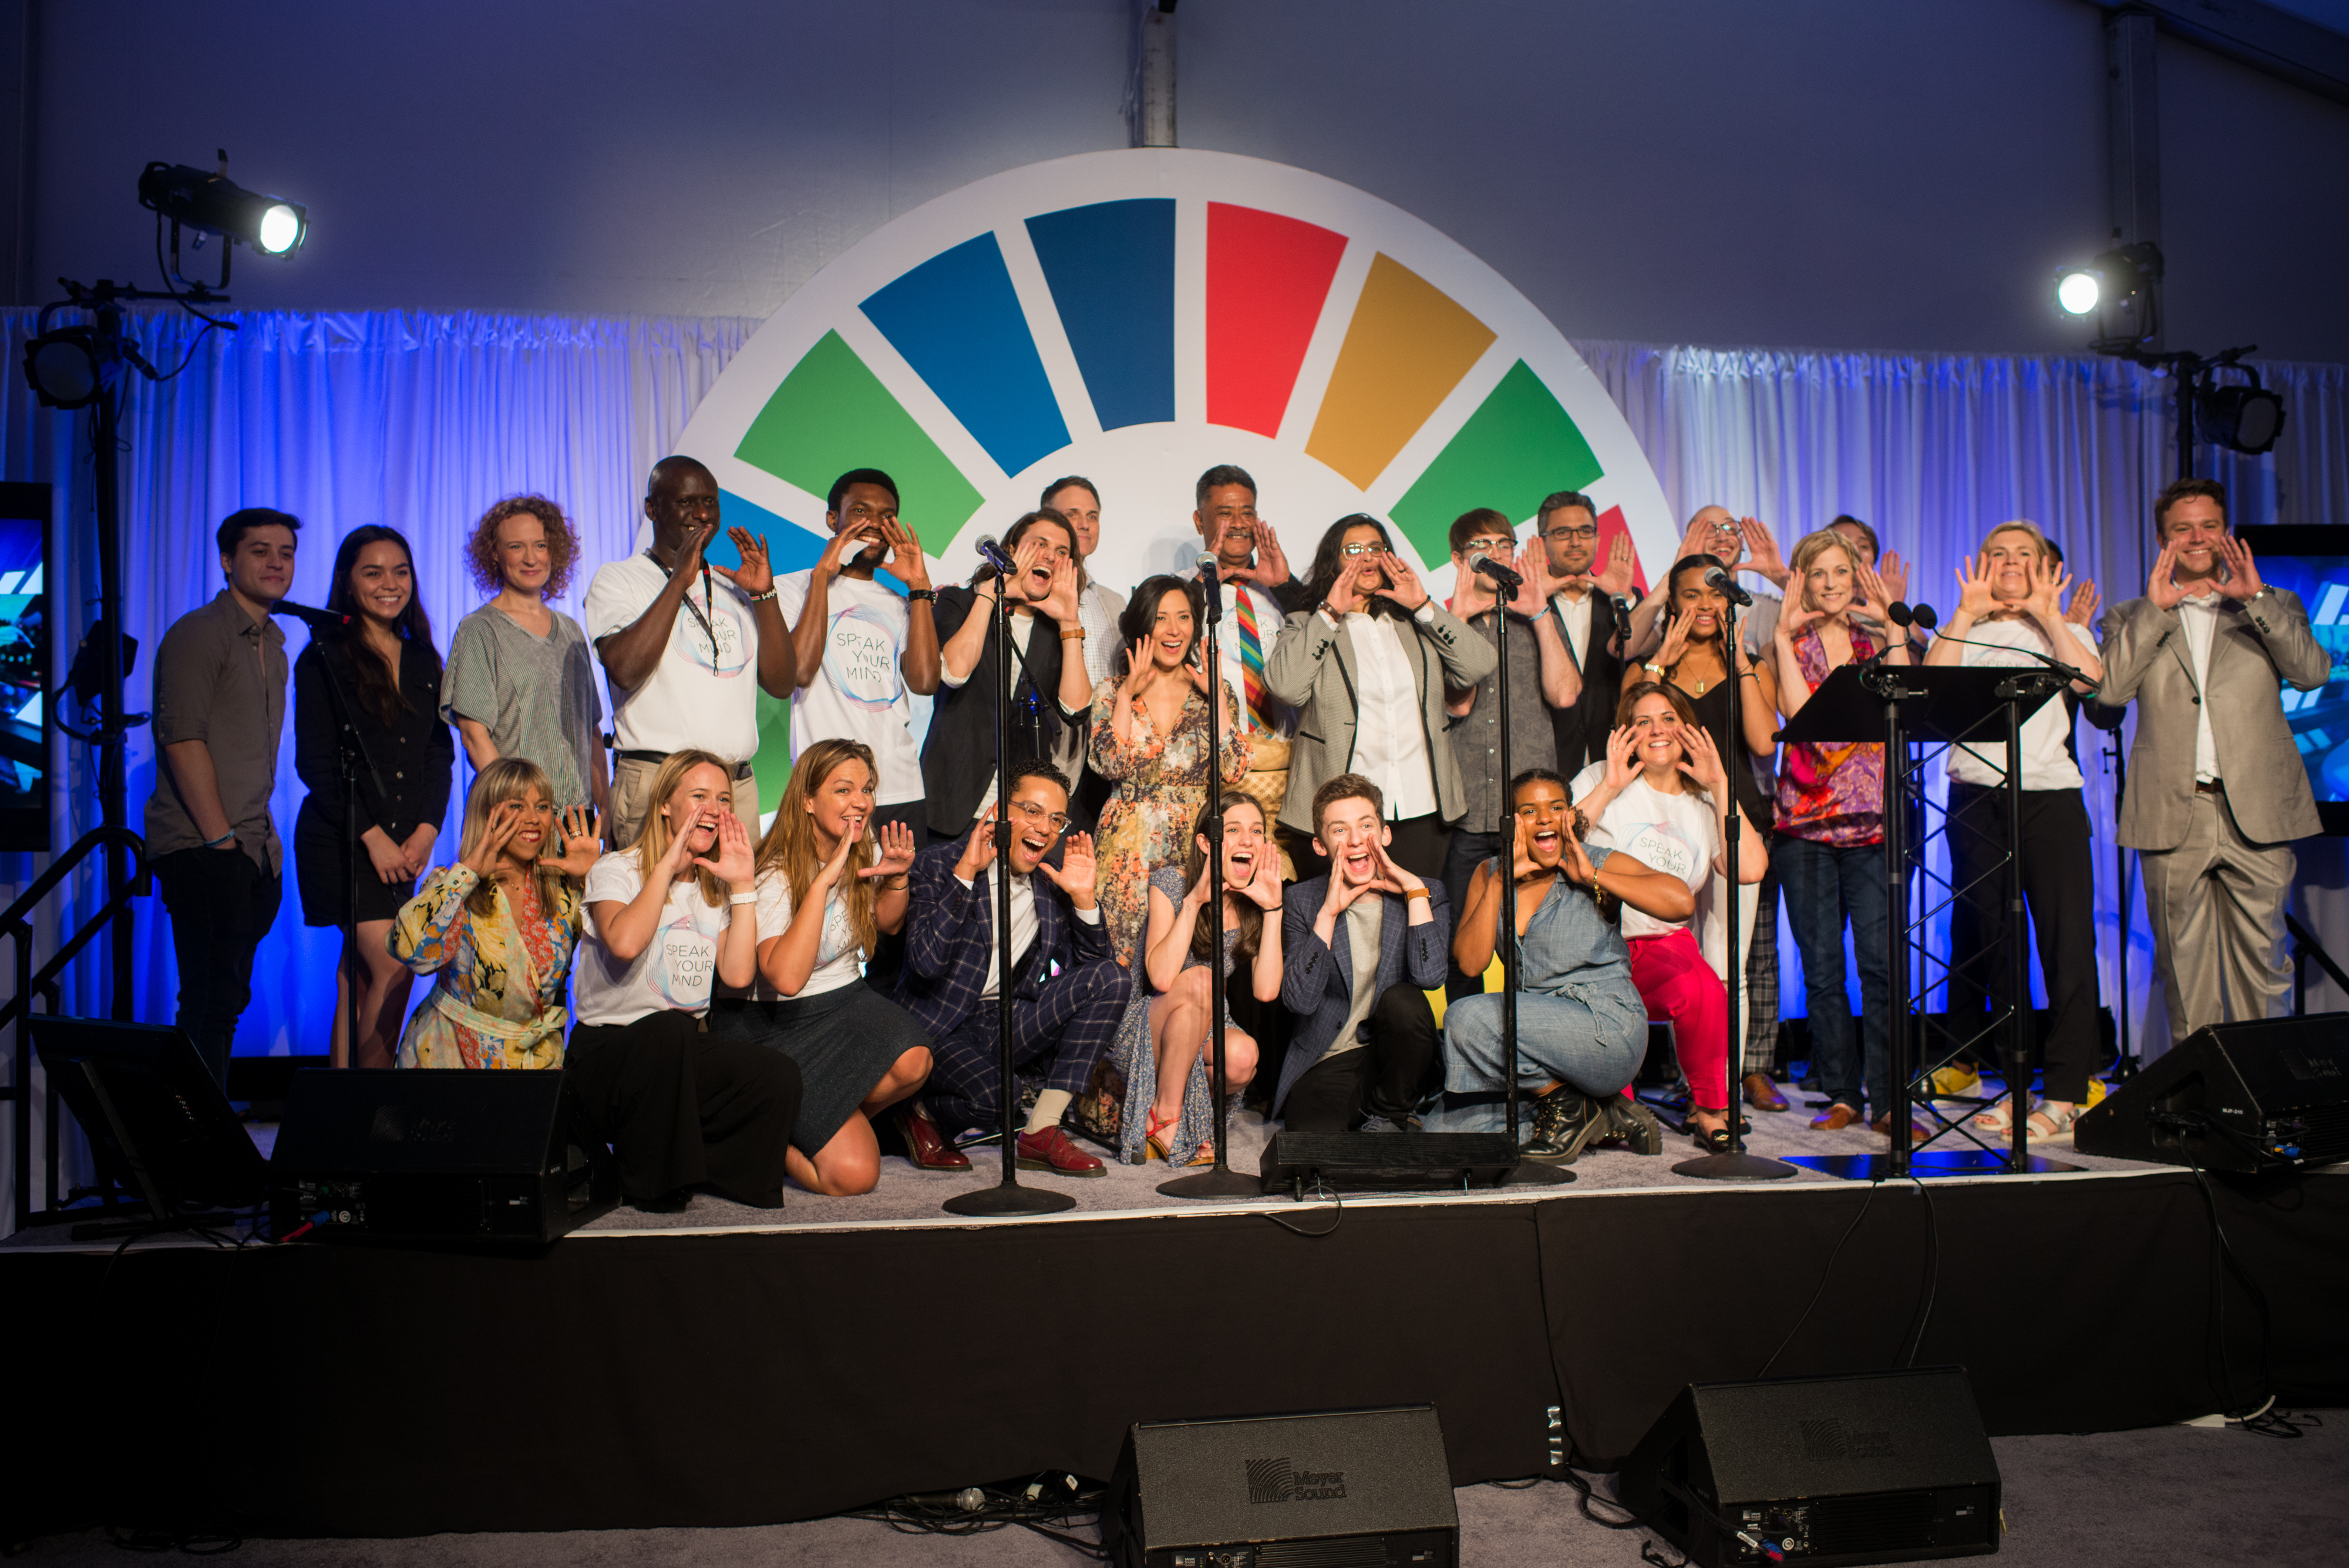 Image: Andrew Seng. United for Global Mental Health CEO Elisha London among speakers and the cast of Dear Evan Hansen at the launch of Speak Your Mind at the 2019 UN General Assembly.